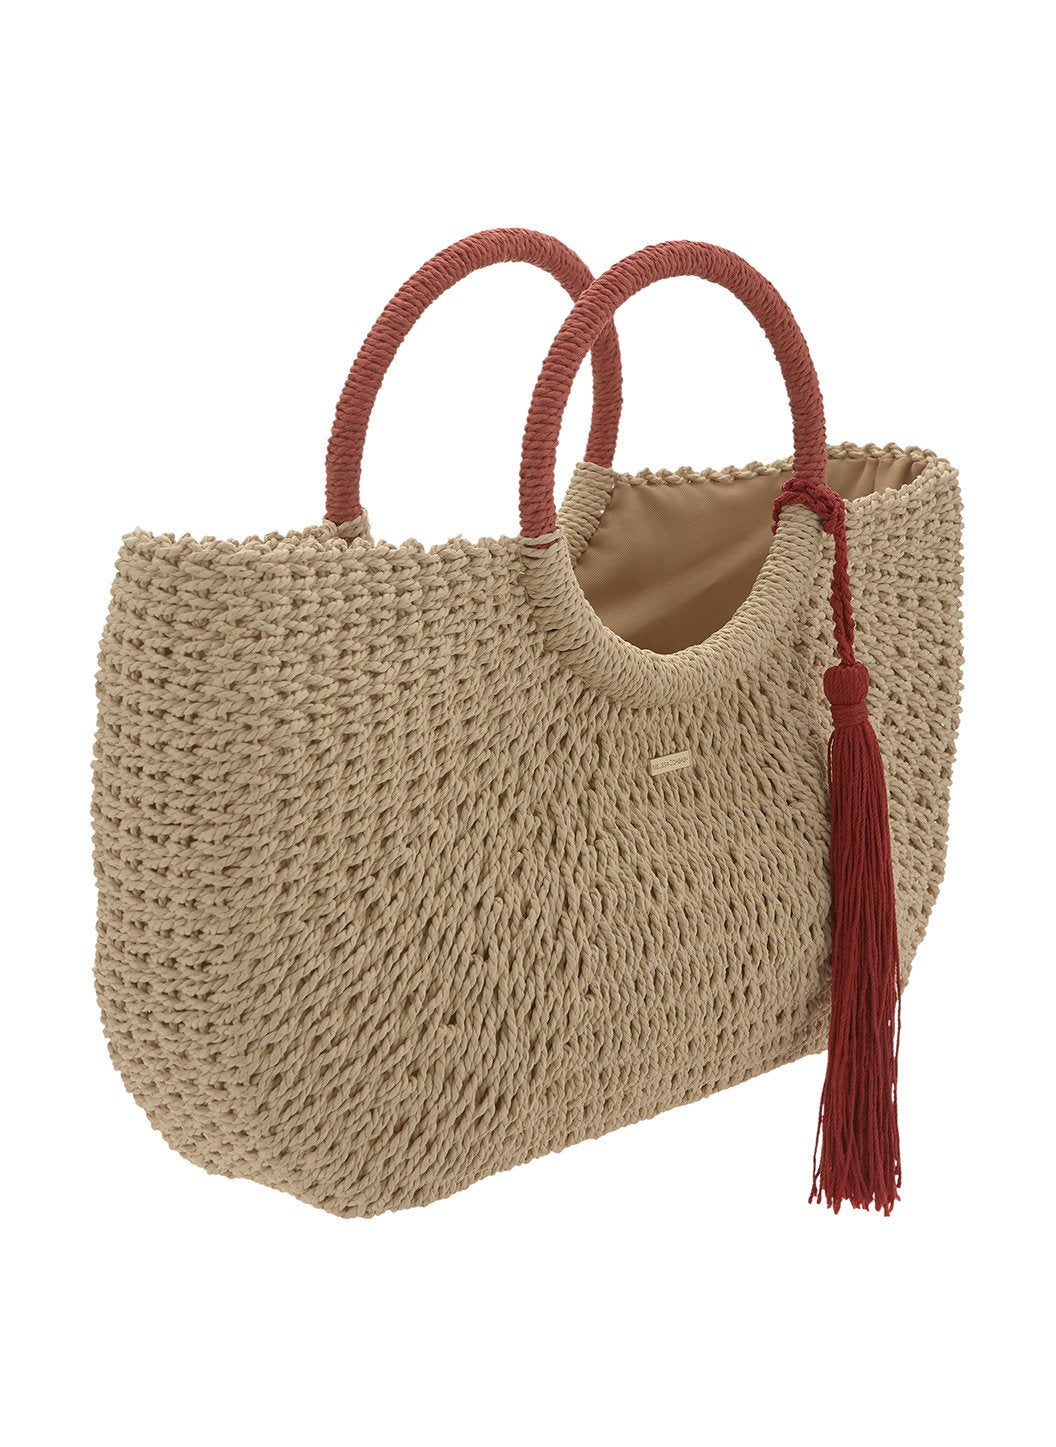 sorrento woven basket bag natural cinnamon 2019 2